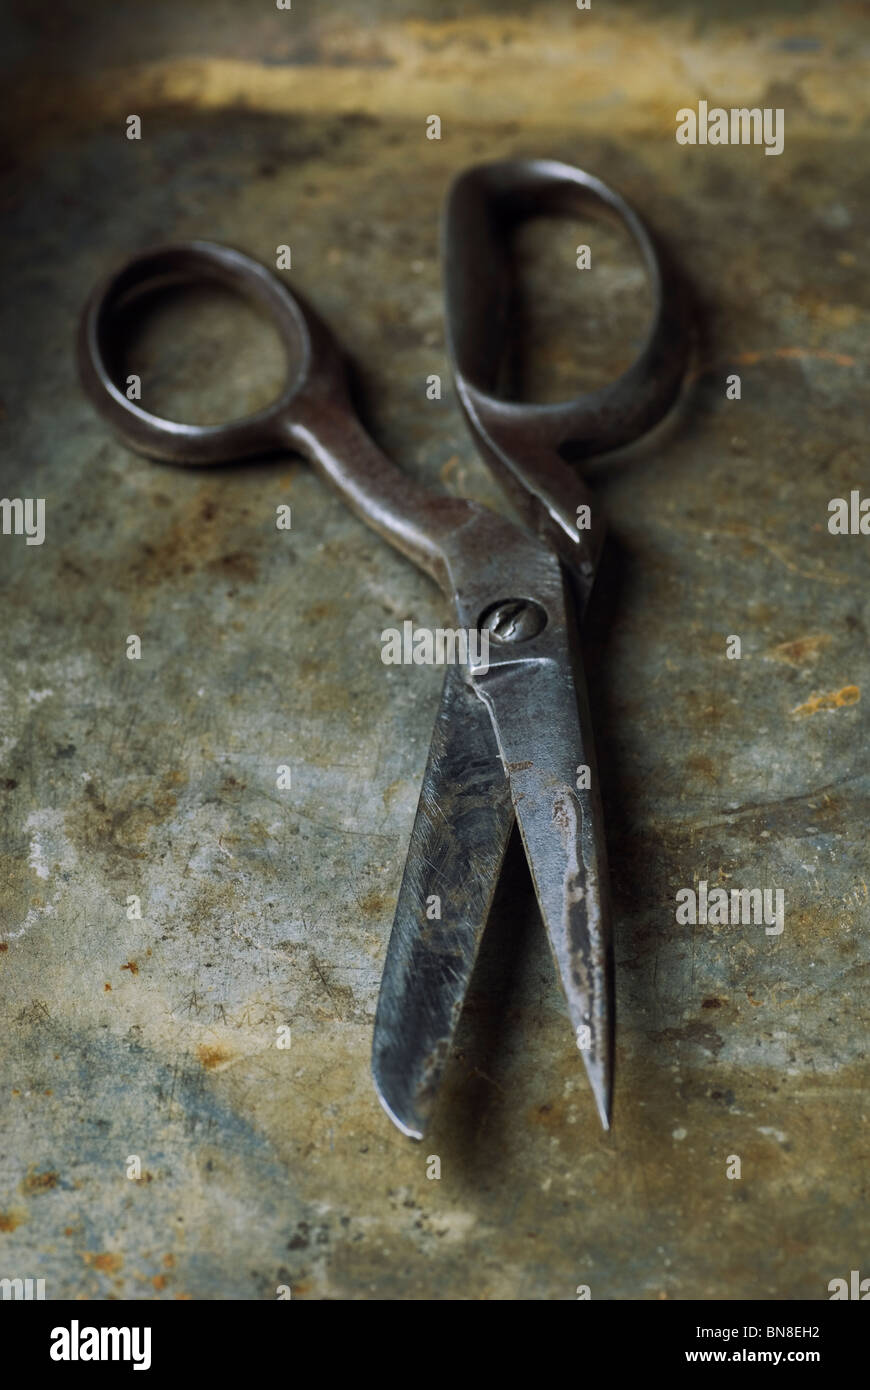 Old rusty tailor's pair of scissors - Stock Image